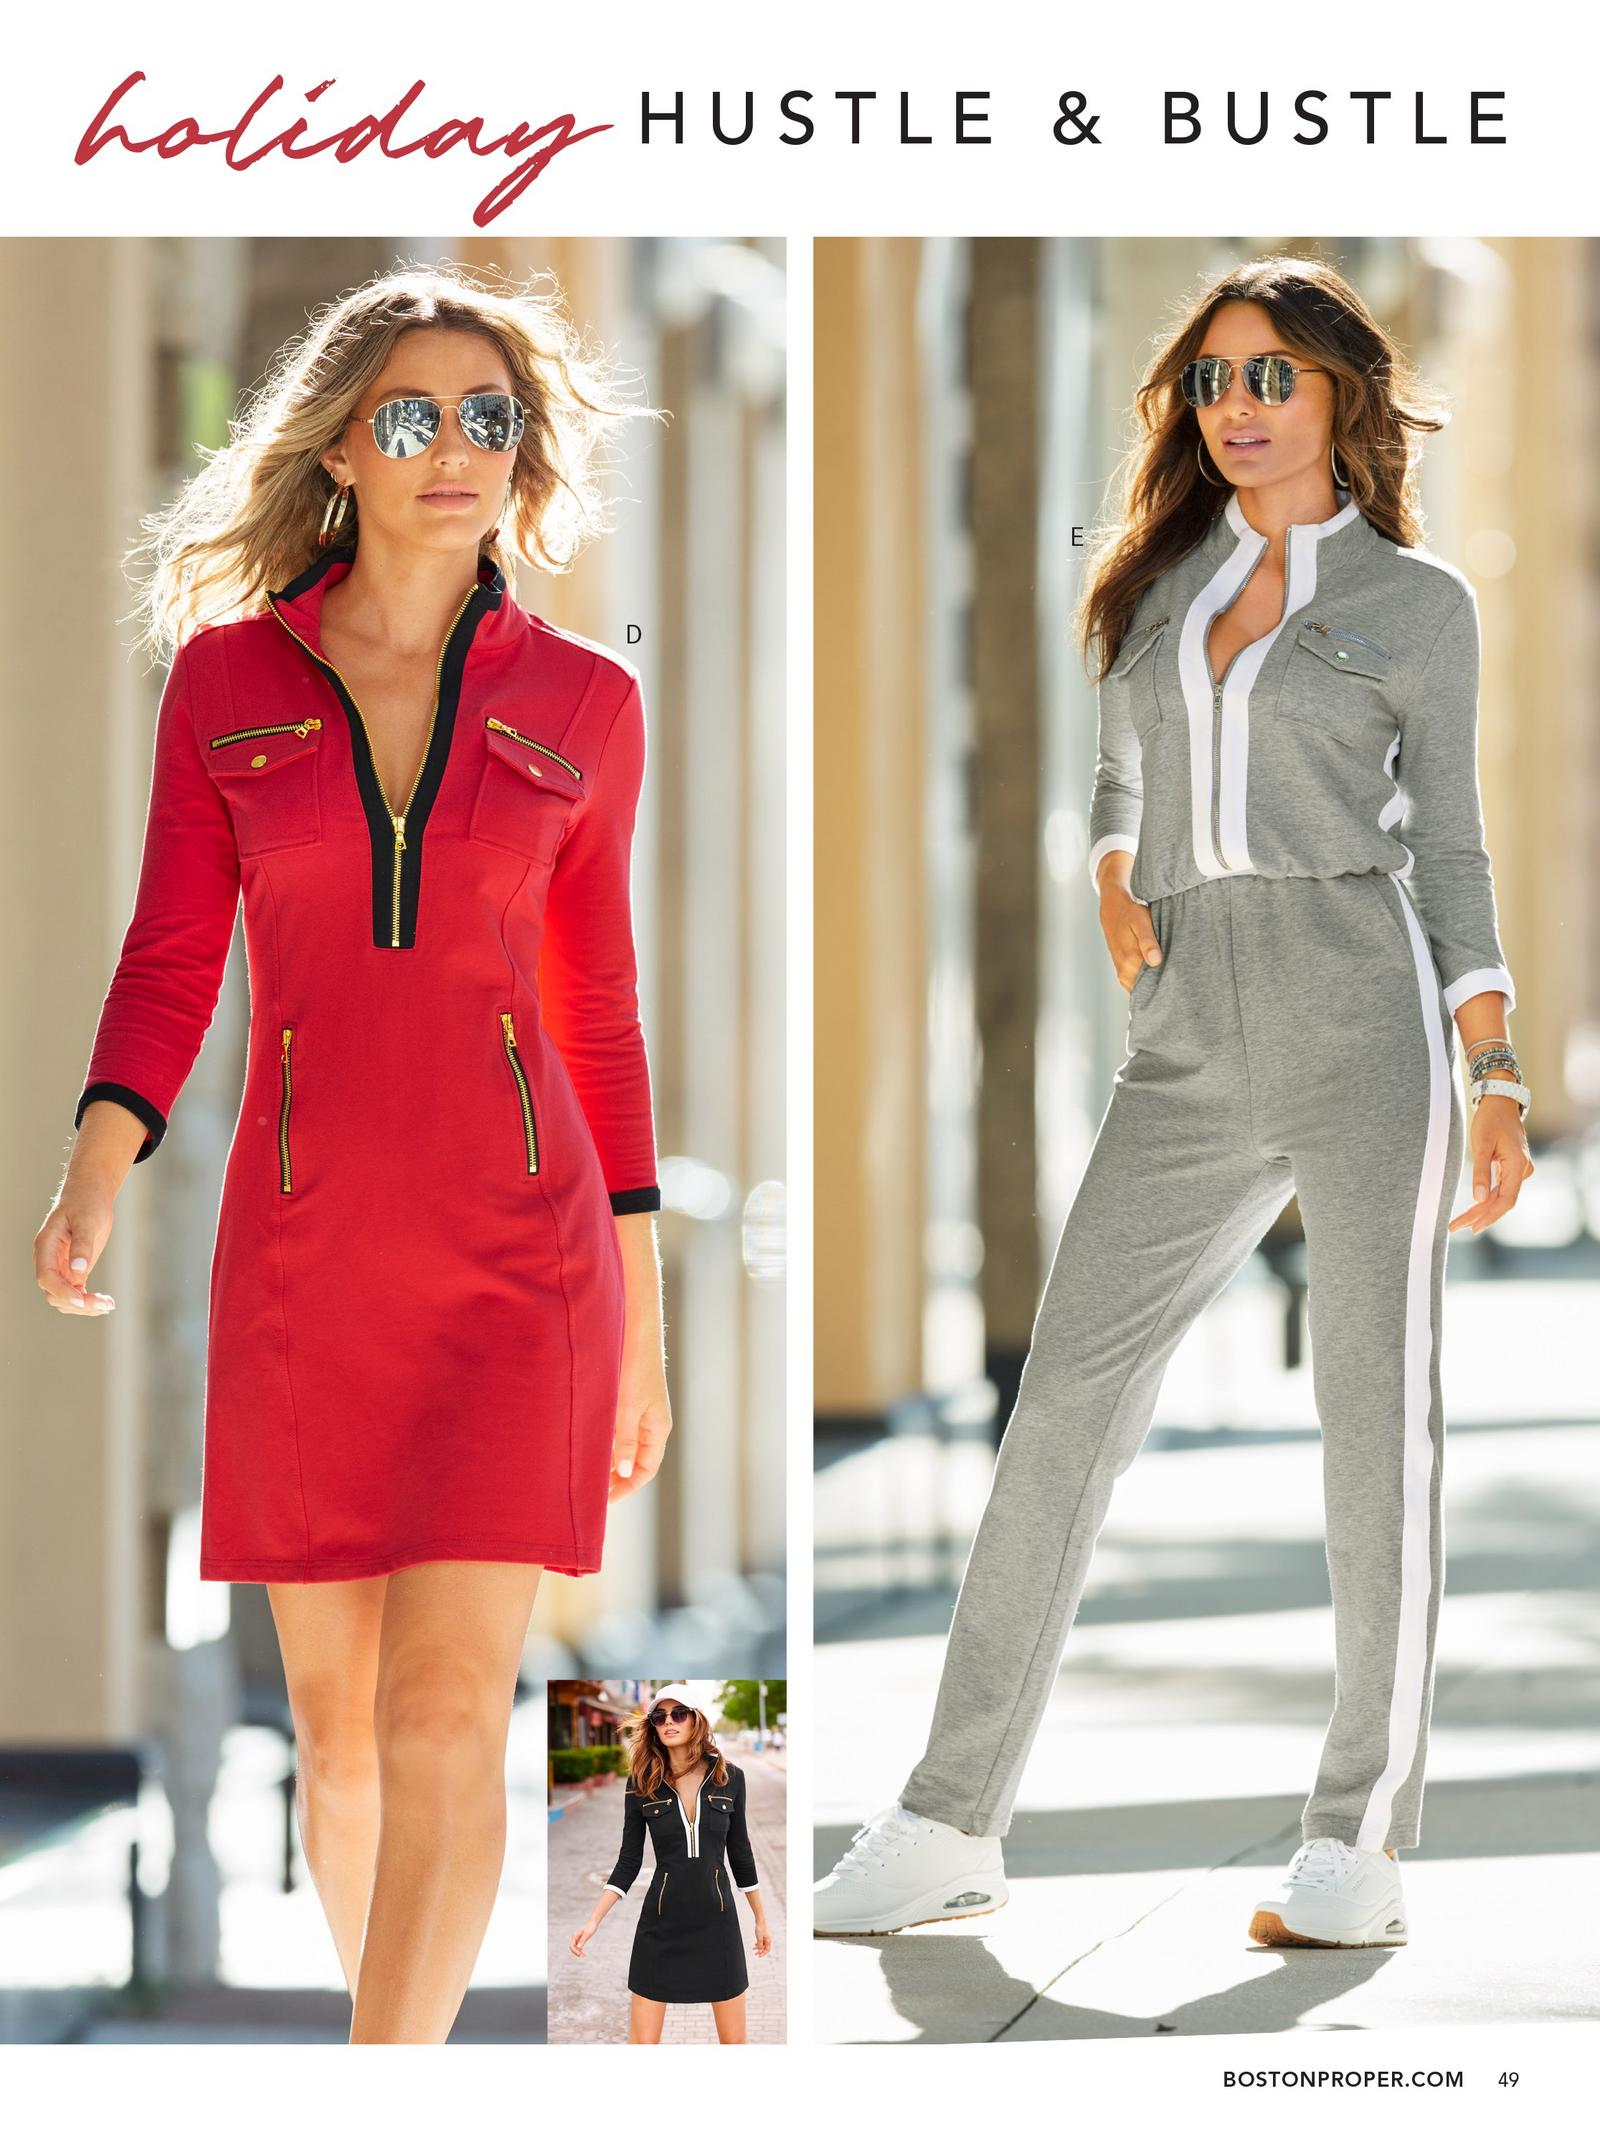 left model wearing red chic zip sport dress. right model wearing three-quarter sleeve chic-zip jumpsuit in grey with white piping.